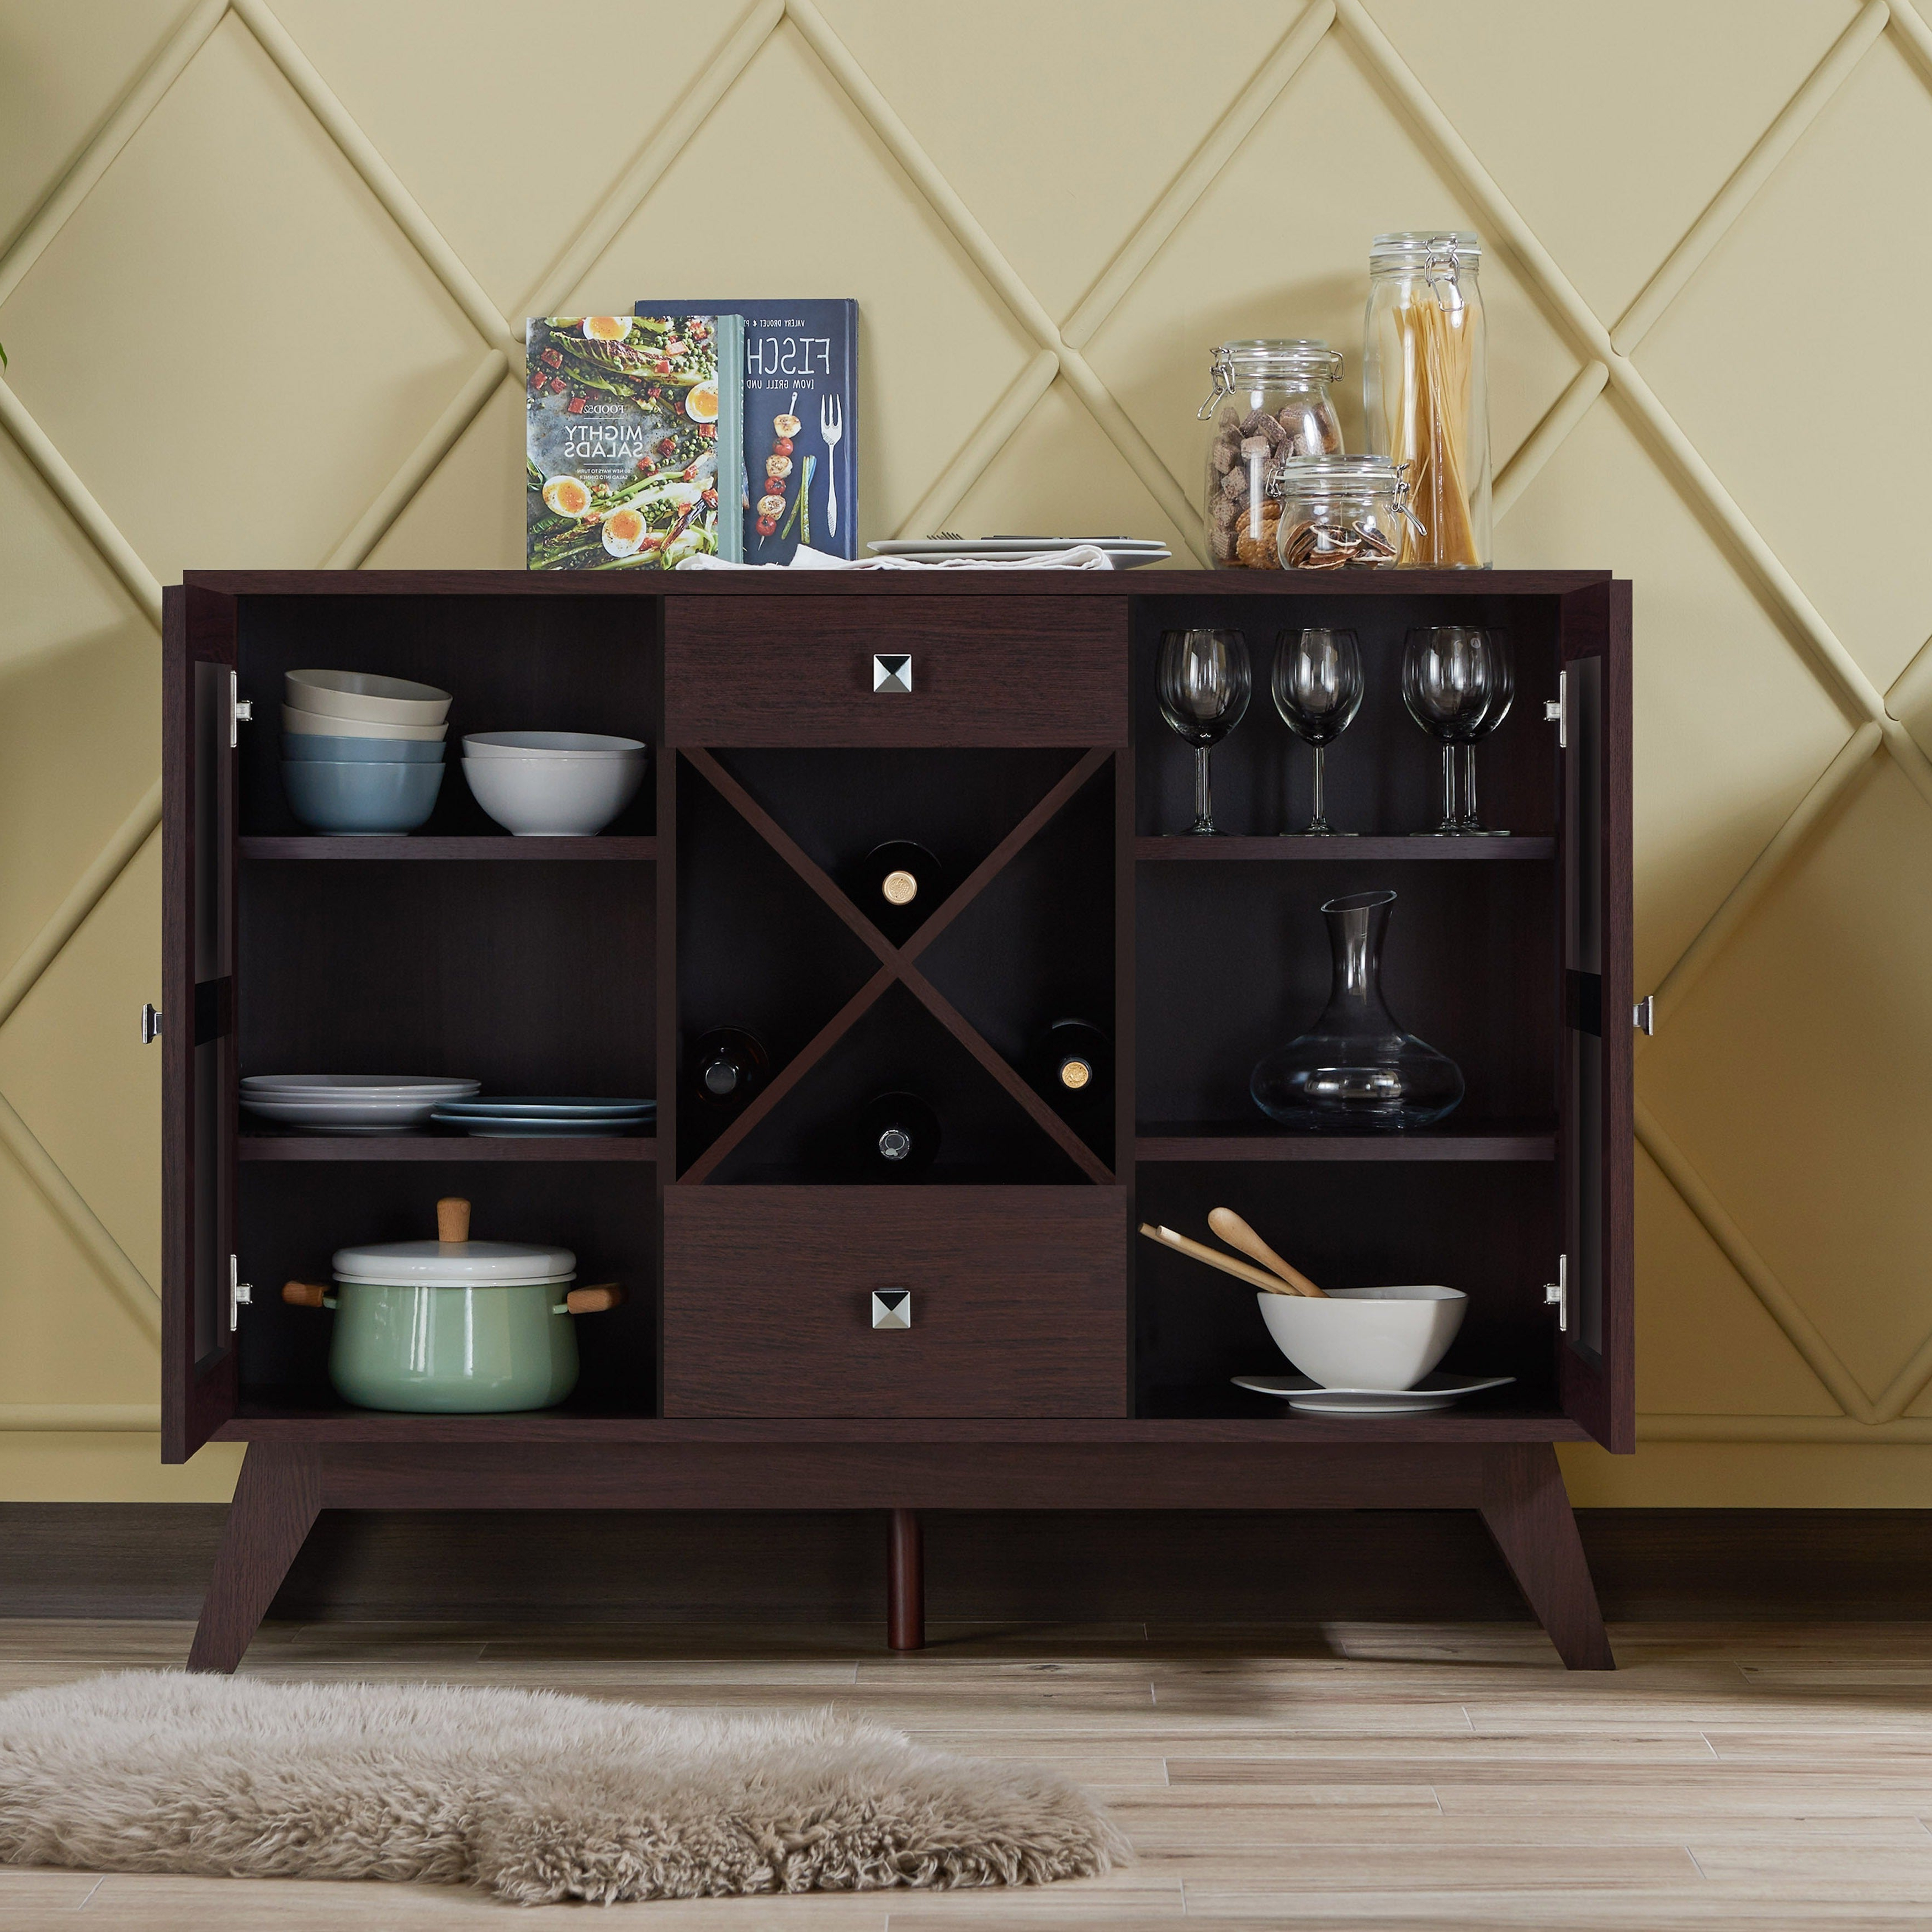 Lenta Contemporary Espresso 2 Cabinet Dining Buffetfoa Intended For Contemporary Espresso 2 Cabinet Dining Buffets (View 14 of 20)